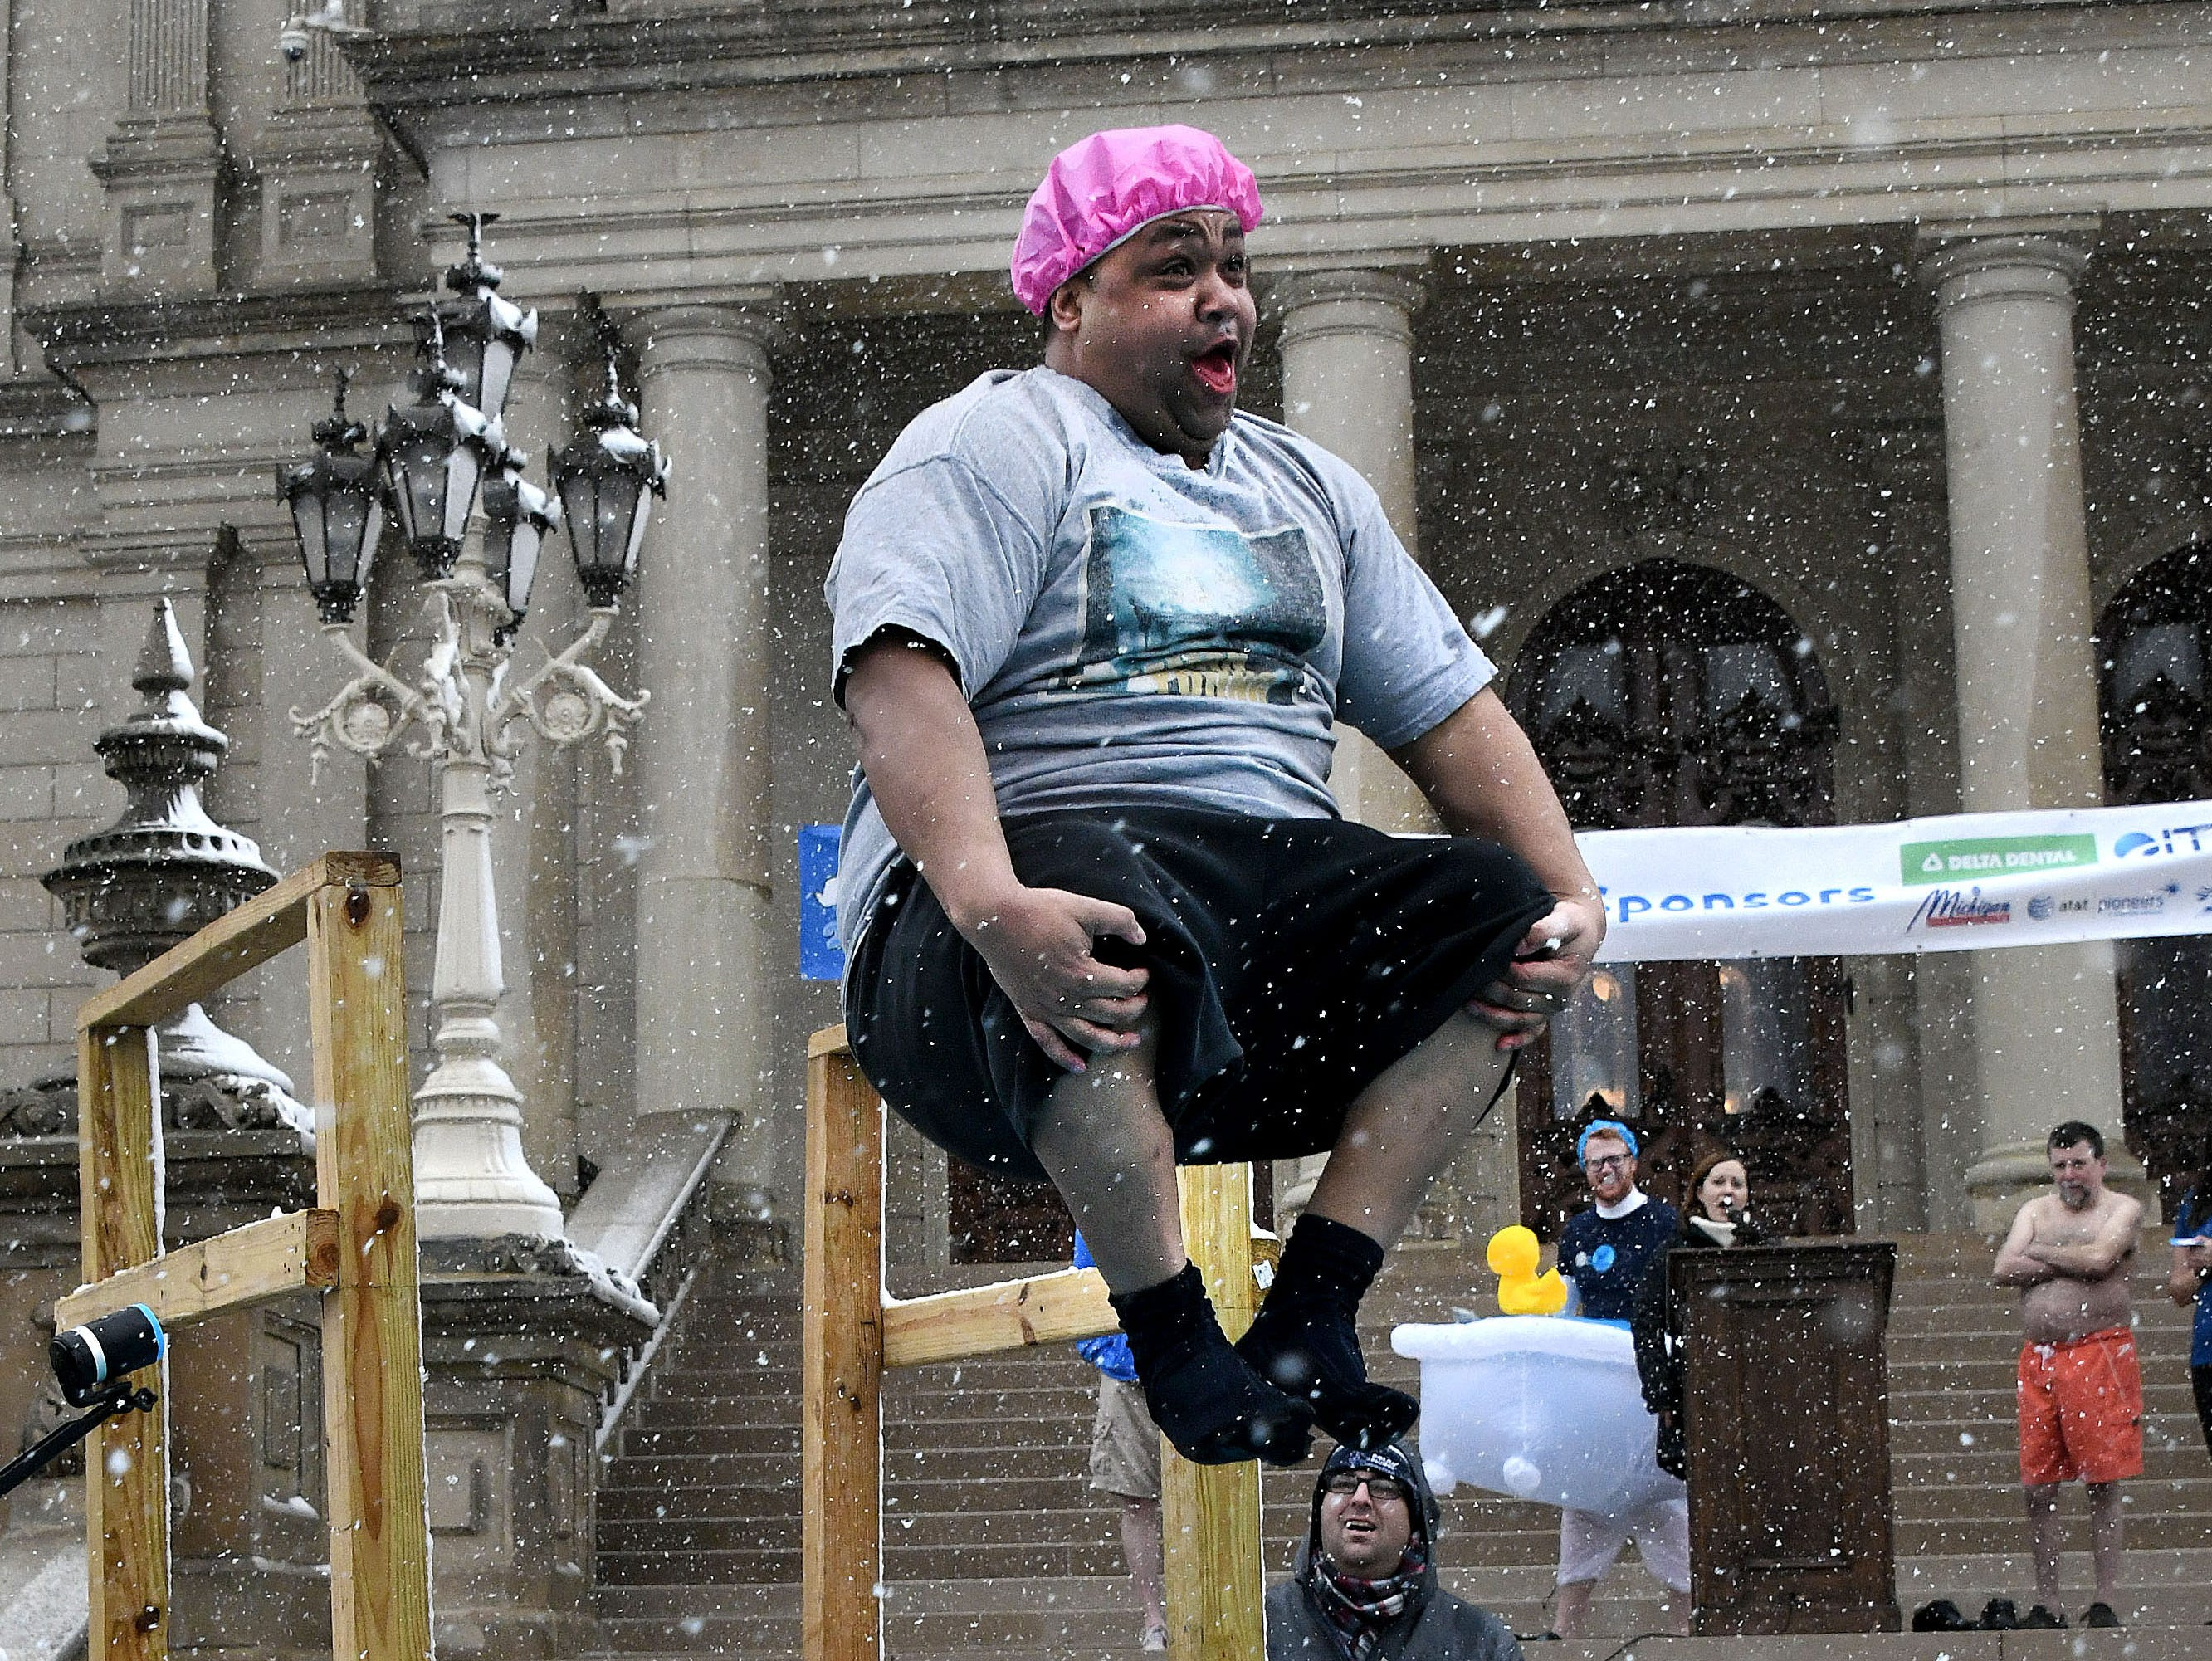 Cannonball! State Sen. Coleman Young Jr. tucks his knees for maximum splash into icy water as legislators and capitol workers take the Legislative Polar Plunge in front of the Capitol on March 1, 2018 to benefit Special Olympics of Michigan.